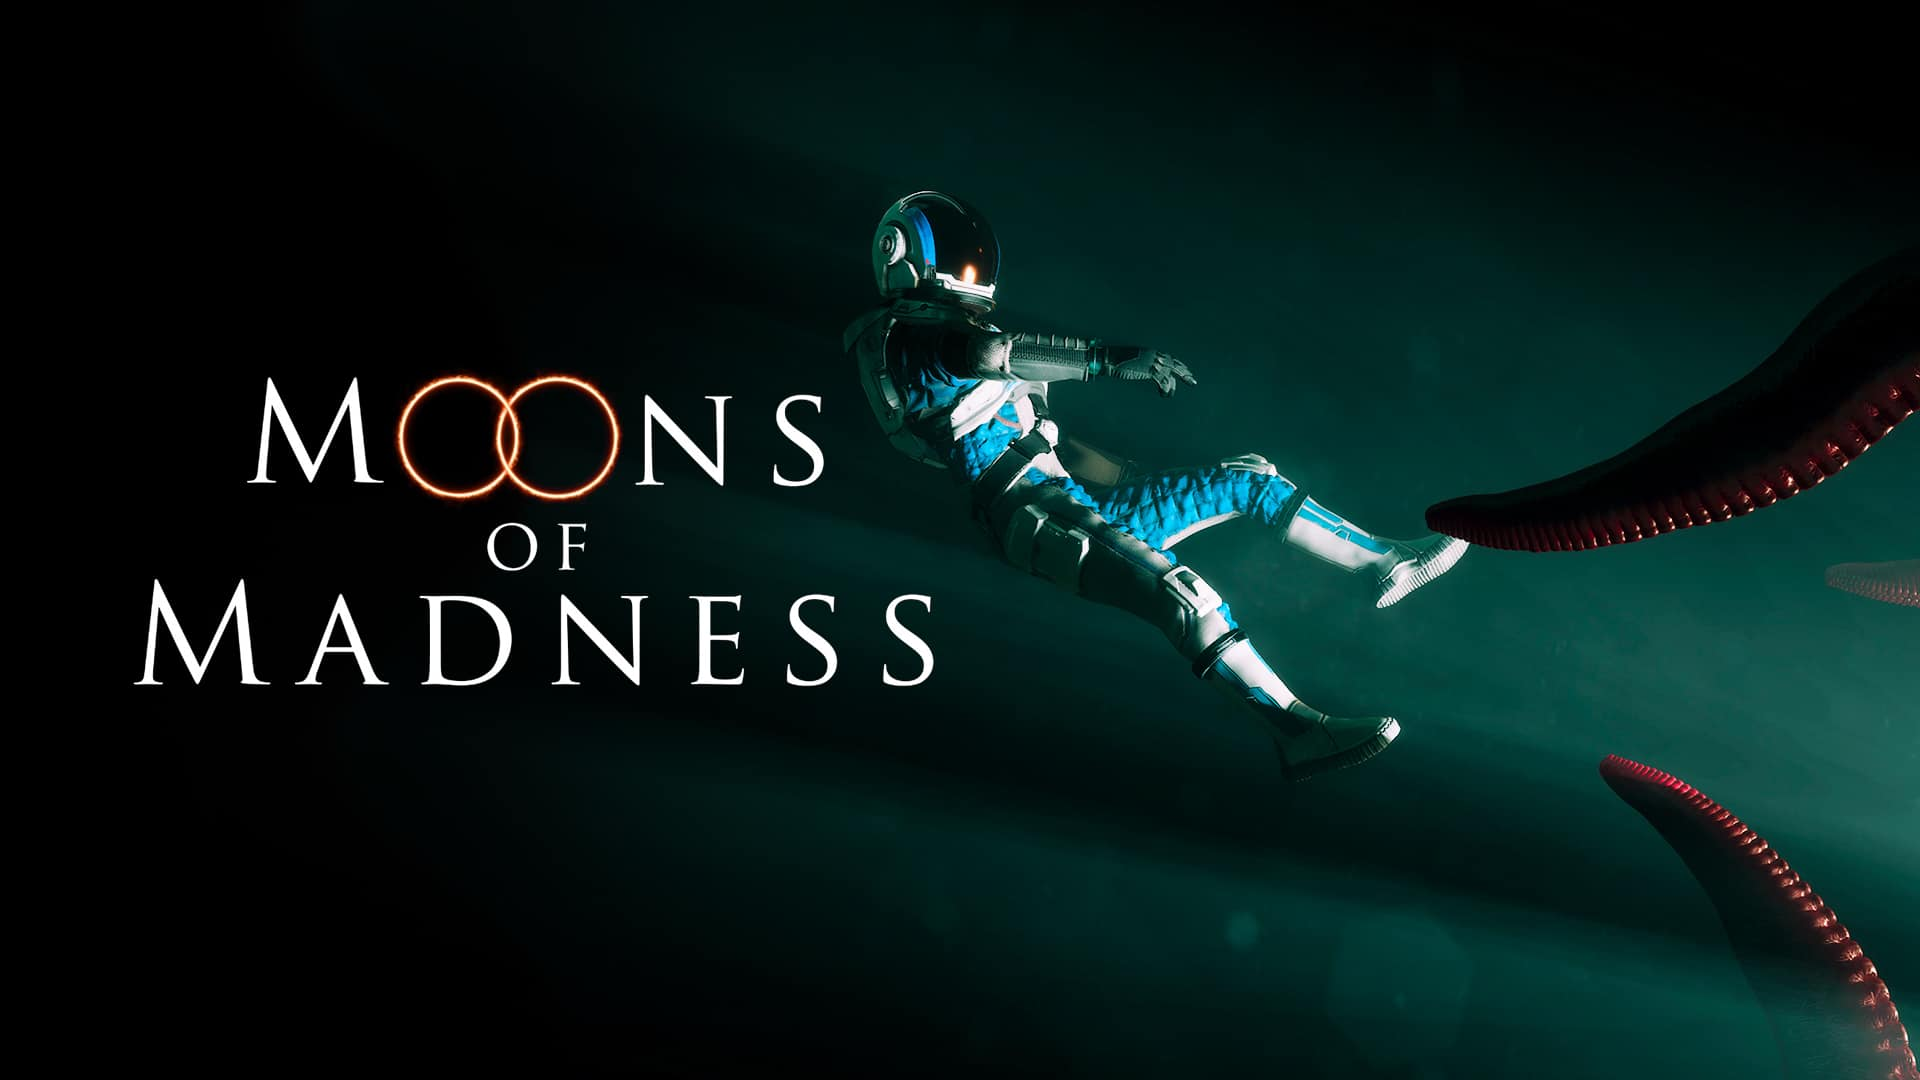 moons of madness - MOONS OF MADNESS (CONSOLE) REVIEW- THE PROBLEMS WITH STARTING AN ELDRITCH GARDEN